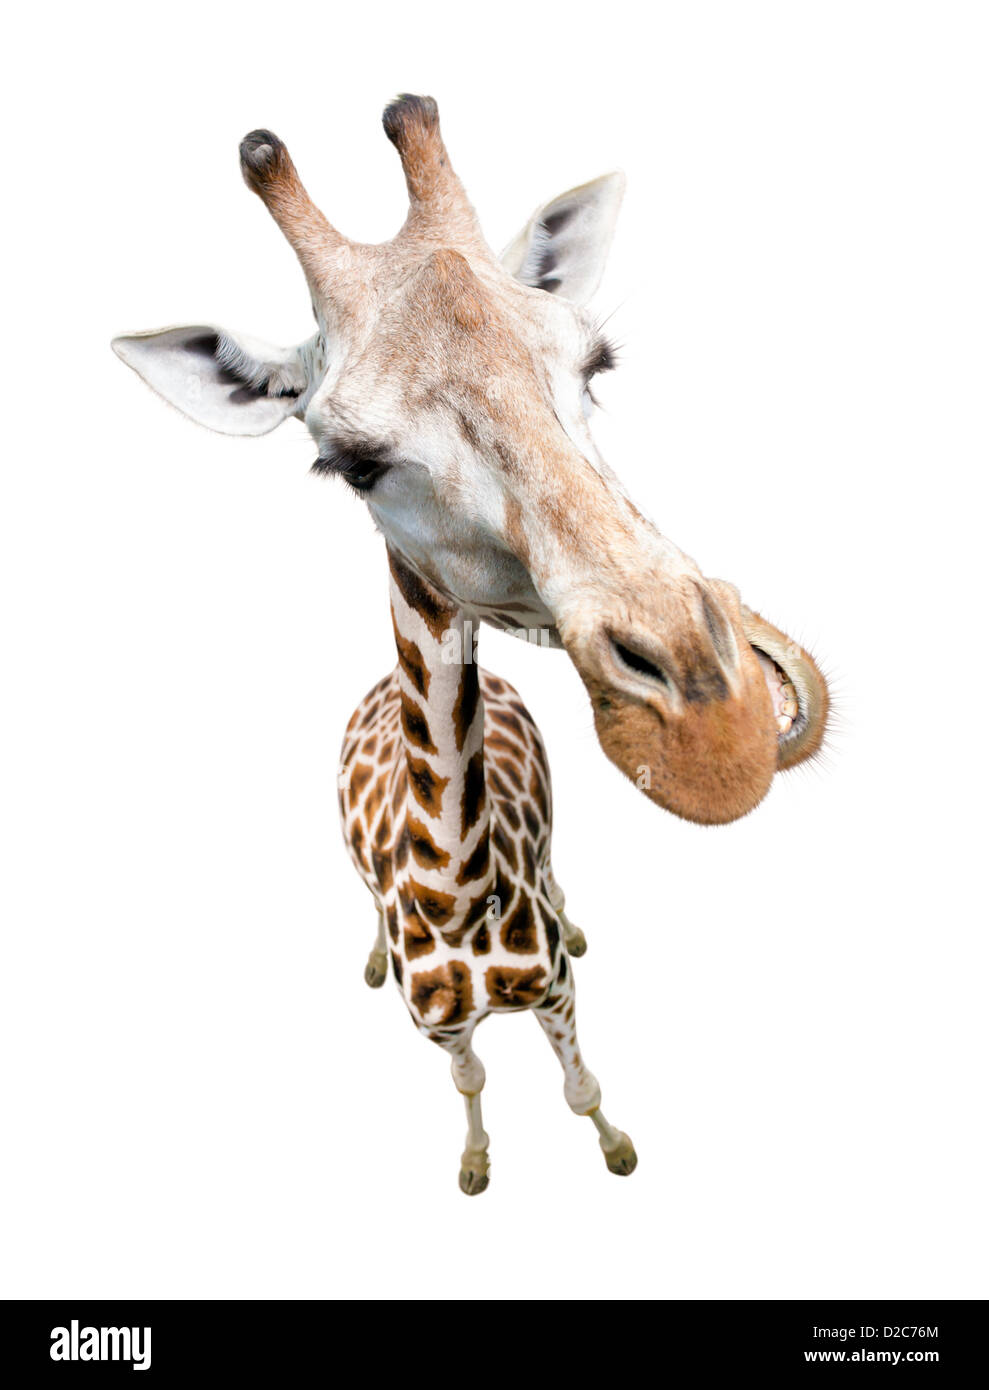 Giraffe closeup portrait isolated on white. Top view wide lens shot. - Stock Image